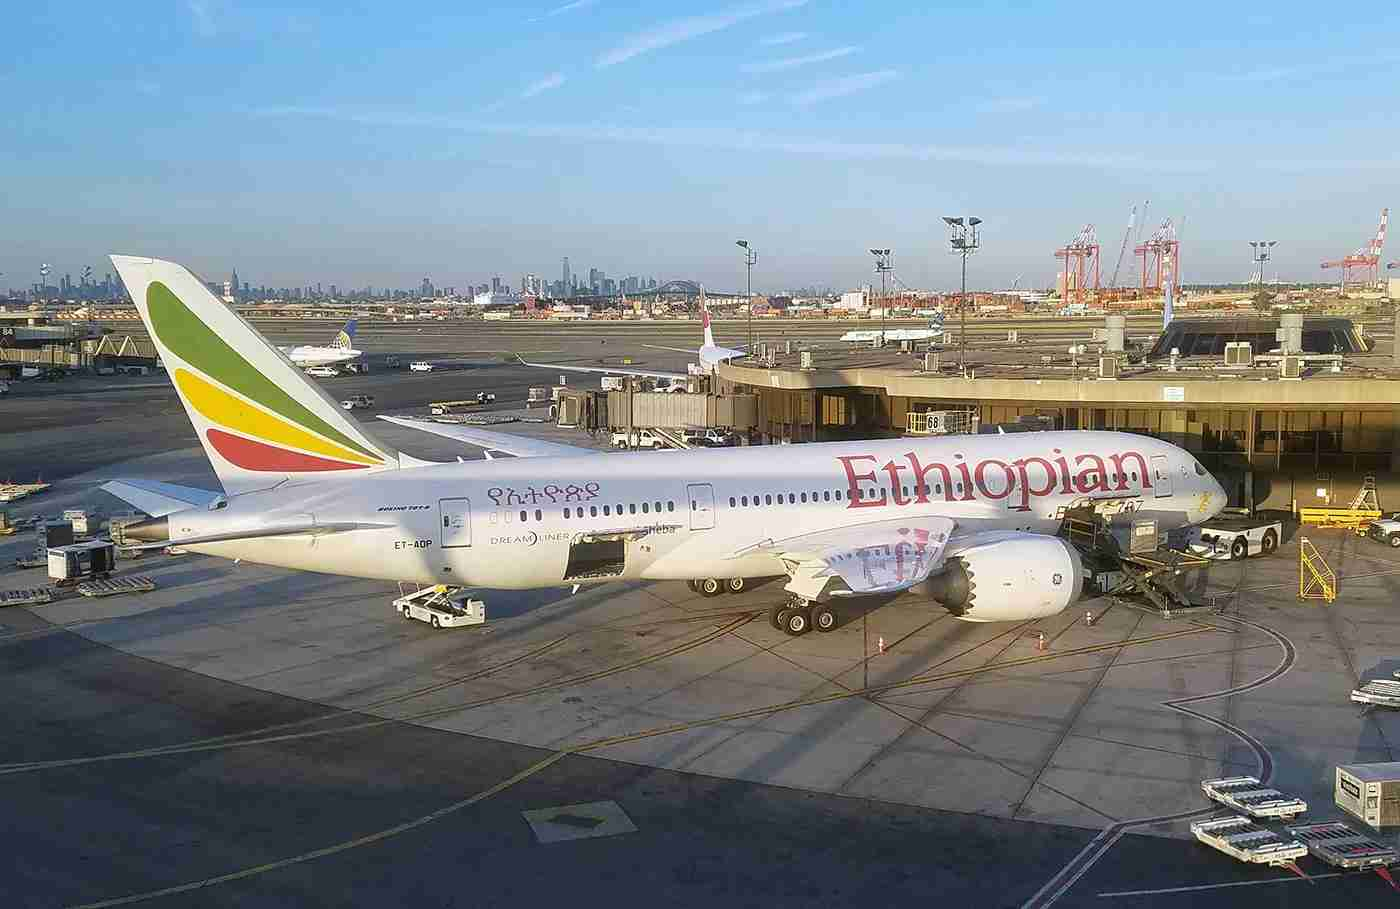 An Ethiopian Airlines Boeing 787-8 at Newark airport, on July 20, 2018 (Photo by Alberto Riva / TPG)